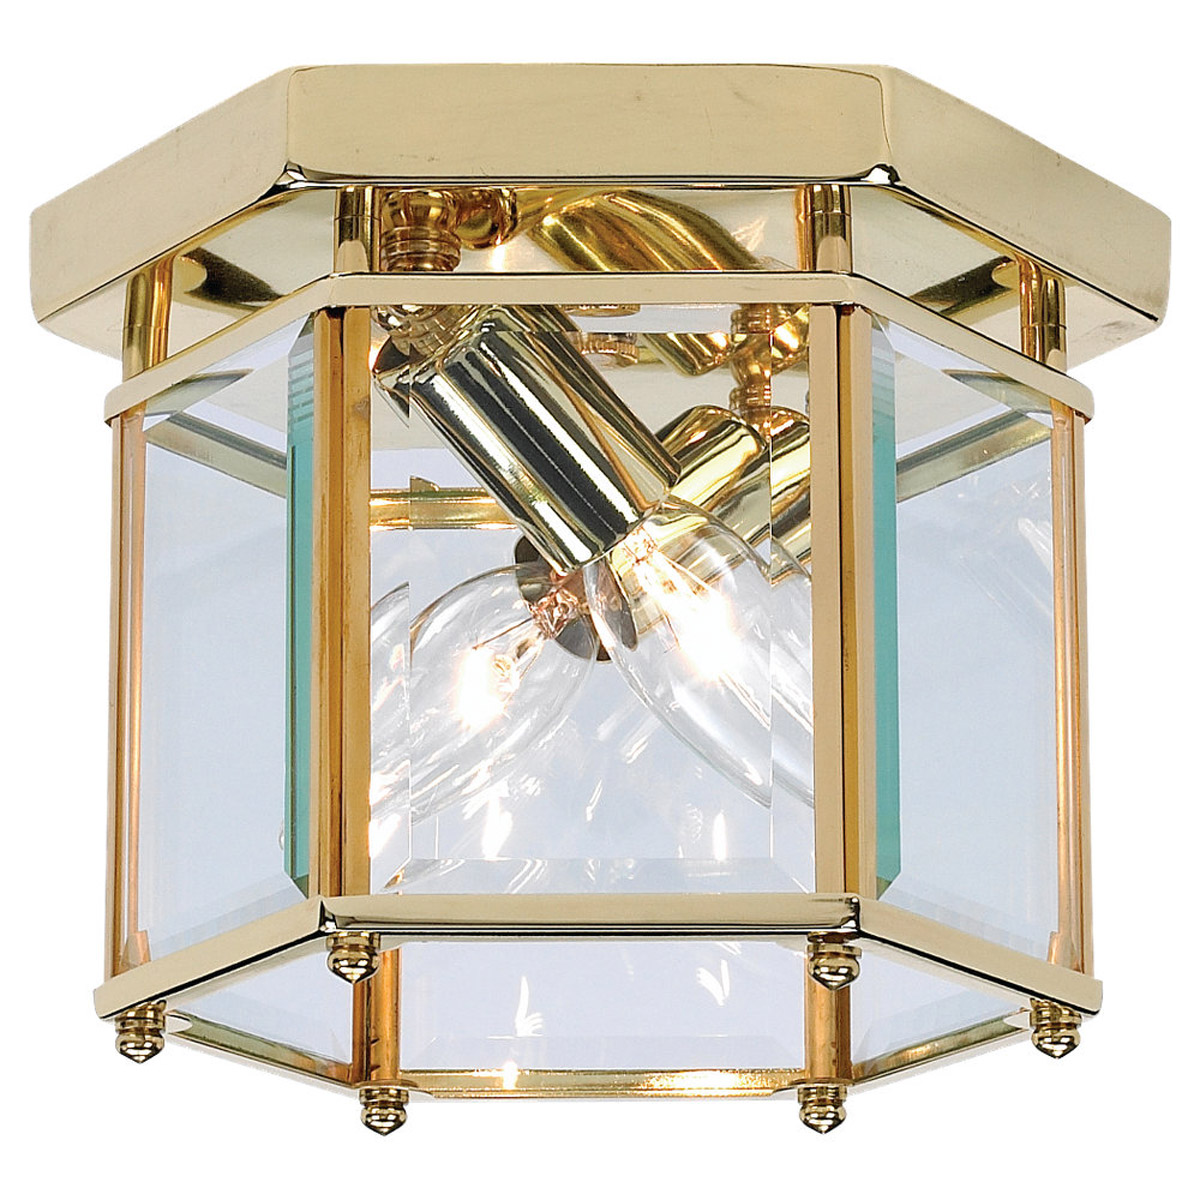 Sea Gull Lighting Bretton 2 Light Flush Mount in Polished Brass 7647-02